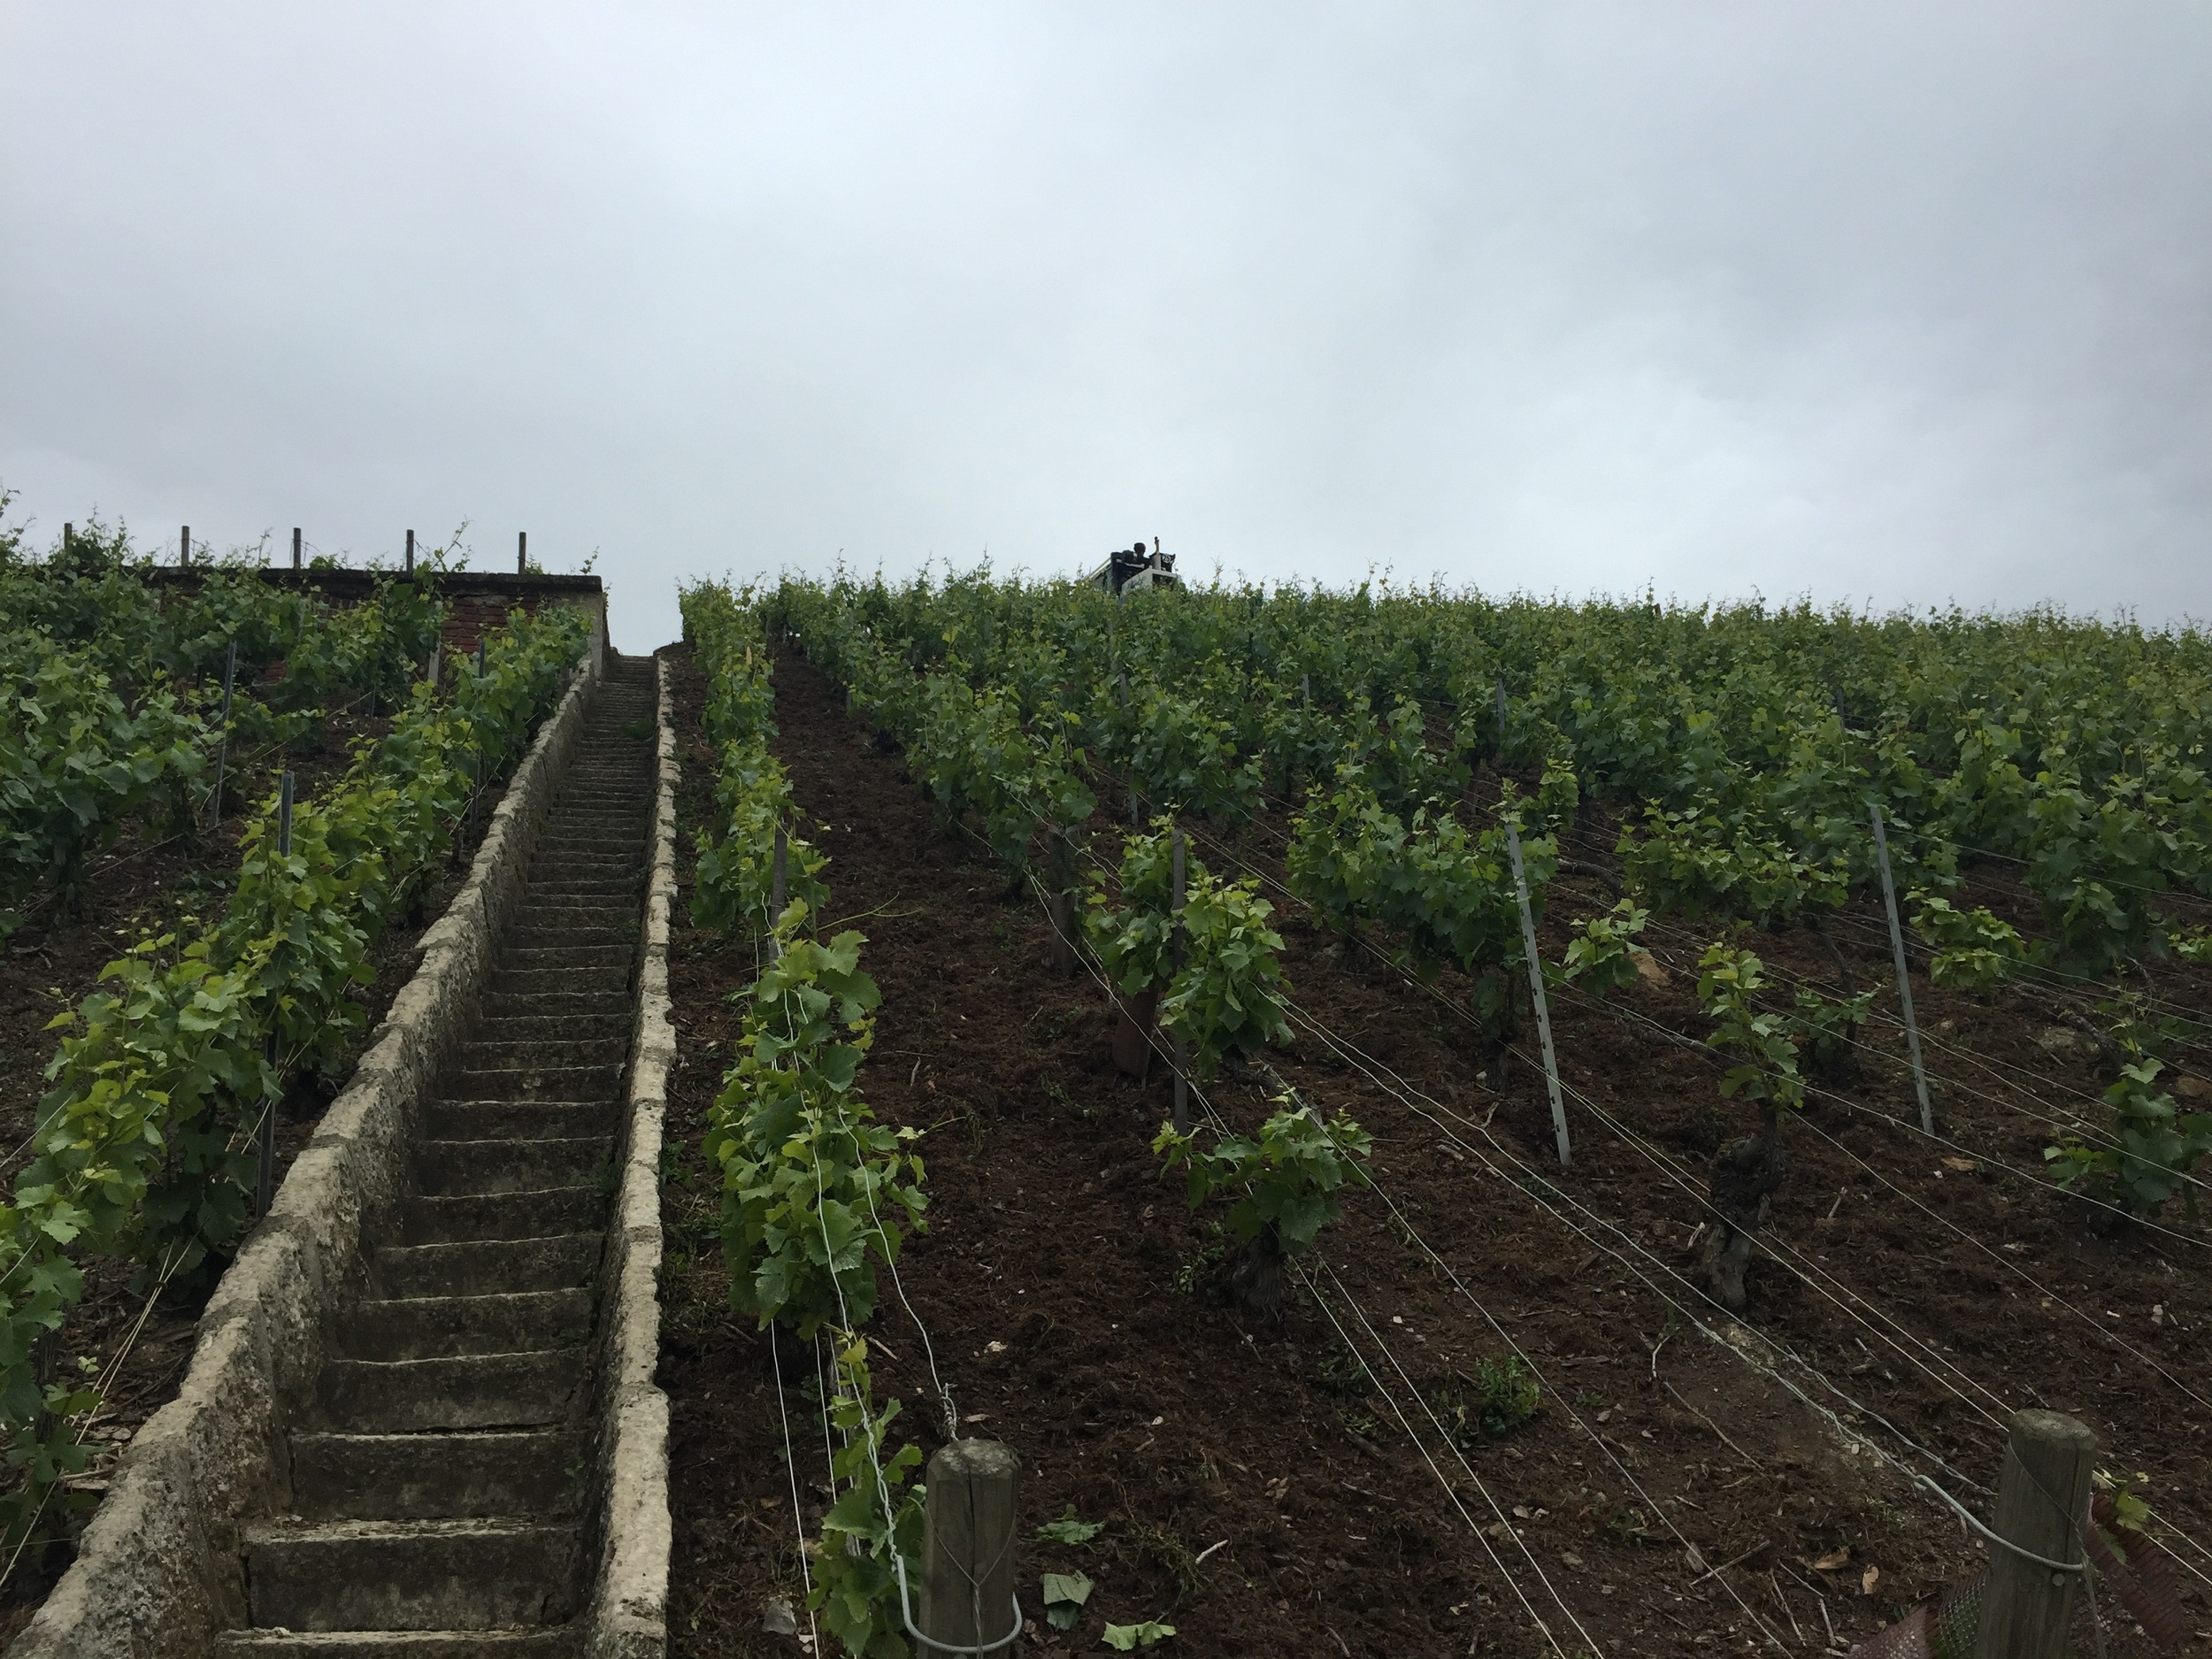 Some sweet vines and a fantastically dangerous flight of stairs in Clos des Goisses.